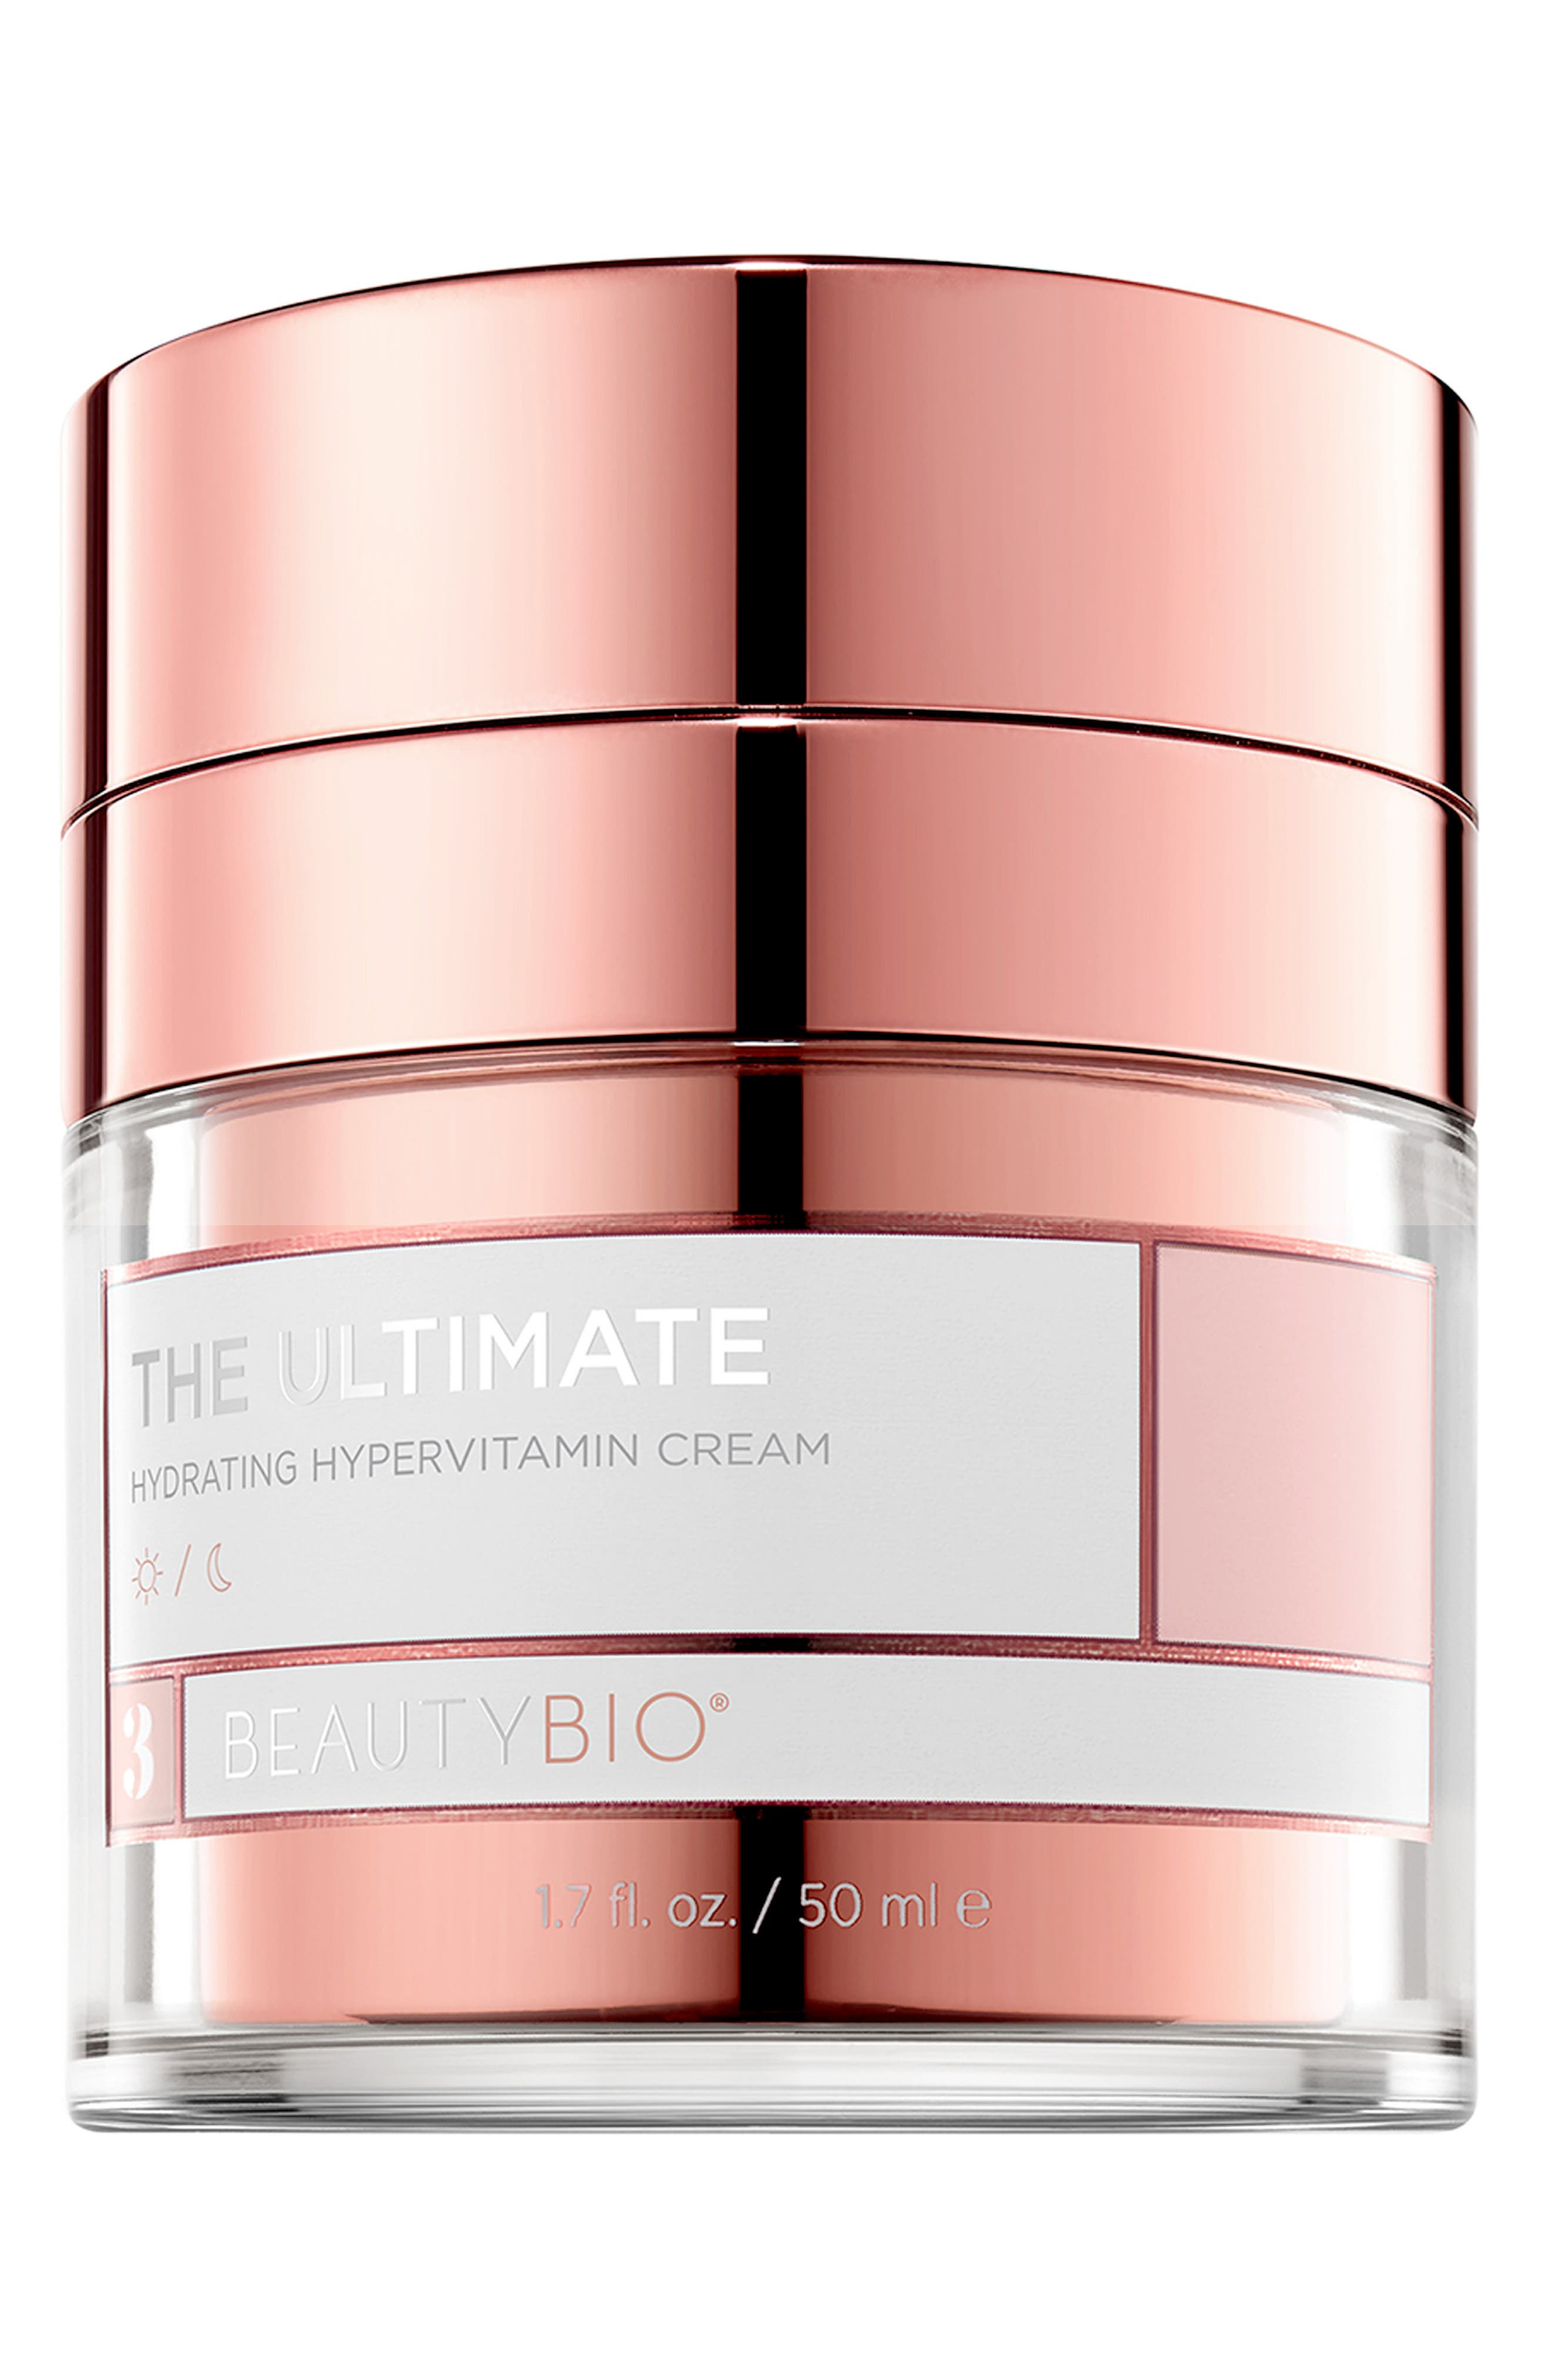 The Ultimate Hydrating Hypervitamin Cream